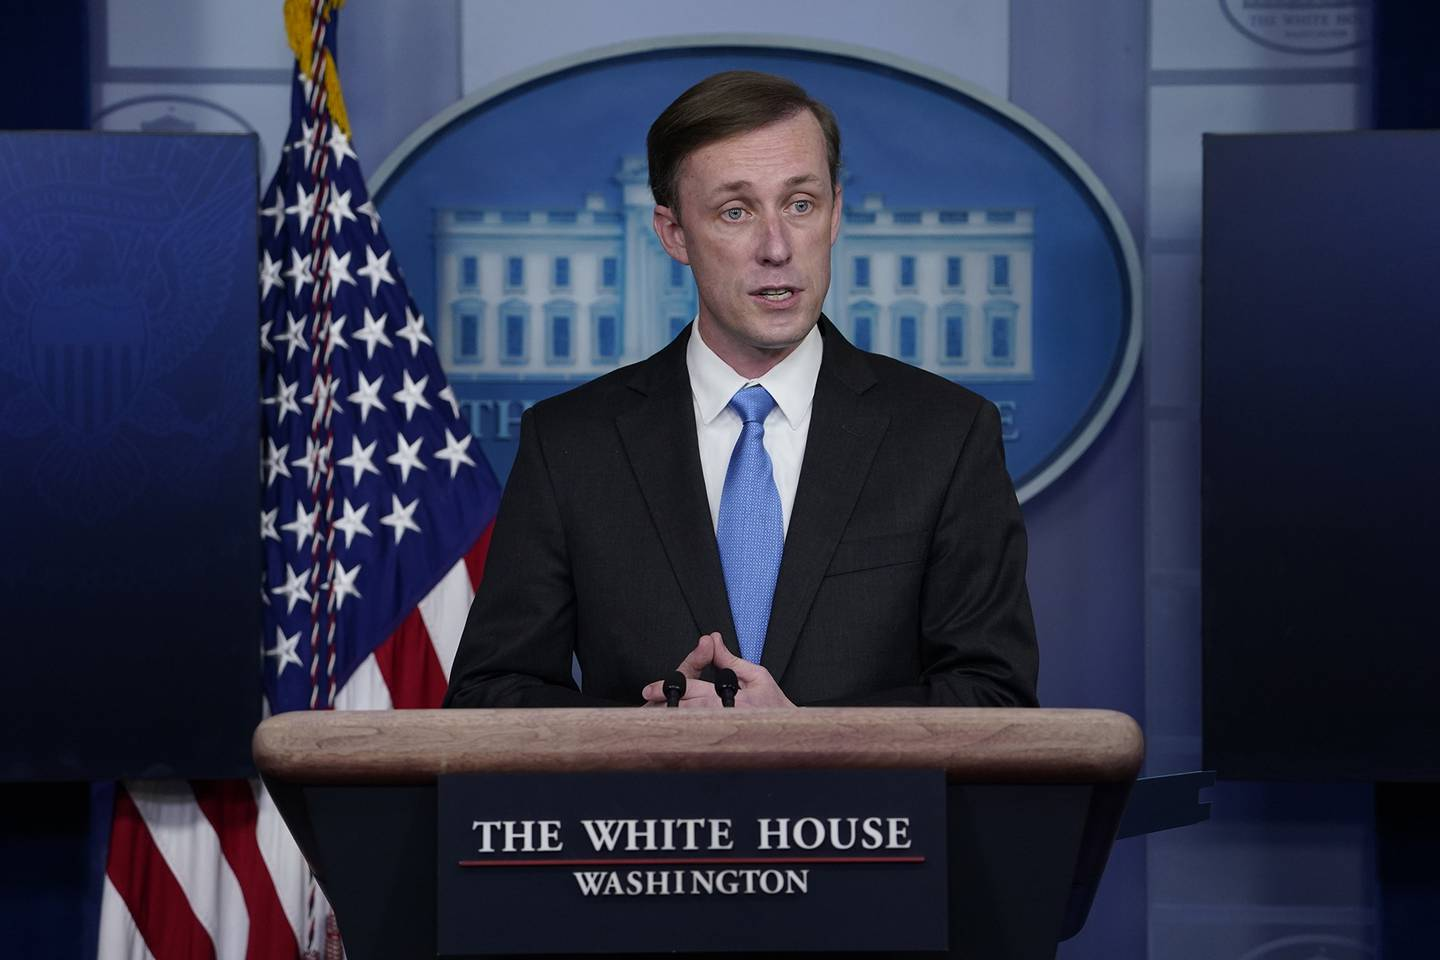 National security adviser Jake Sullivan speaks during a press briefing at the White House on Feb. 4, 2021, in Washington.